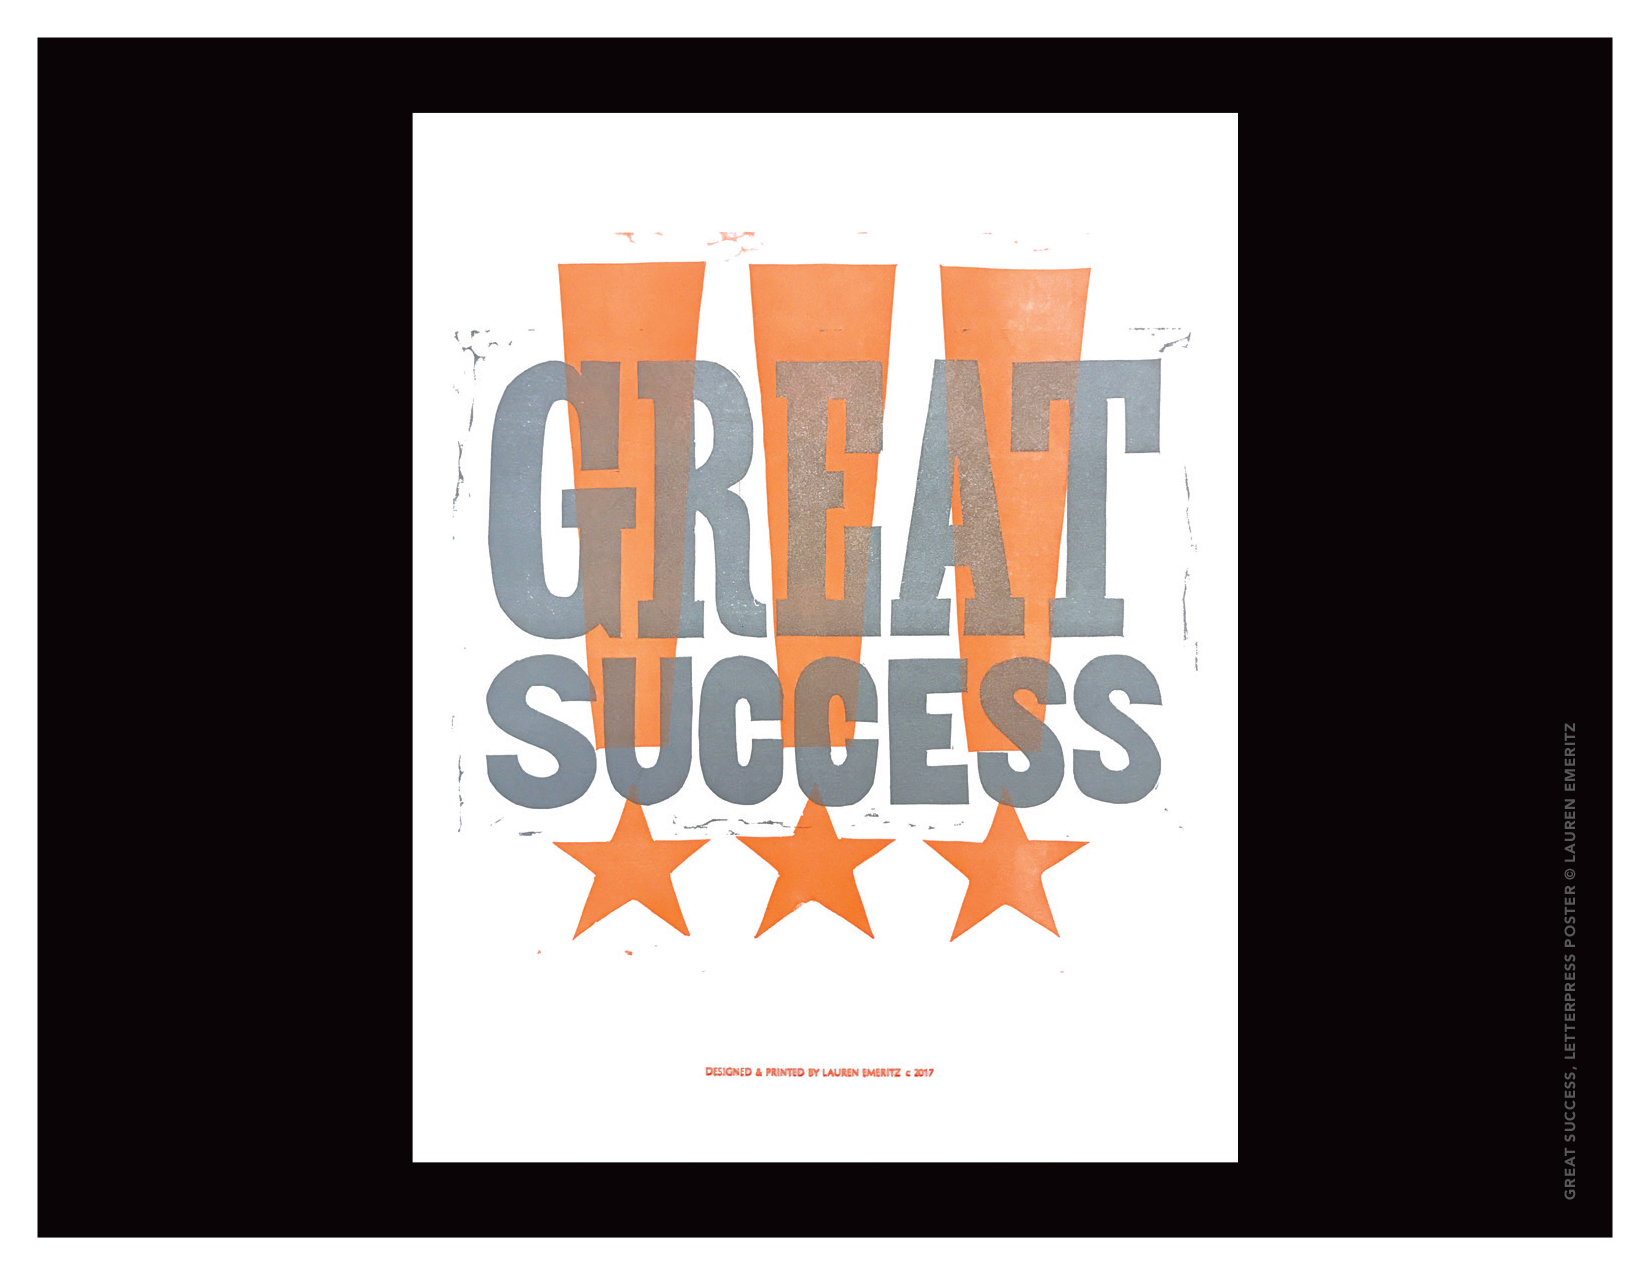 LE-Art-2017-GreatSuccess-Poster.jpg